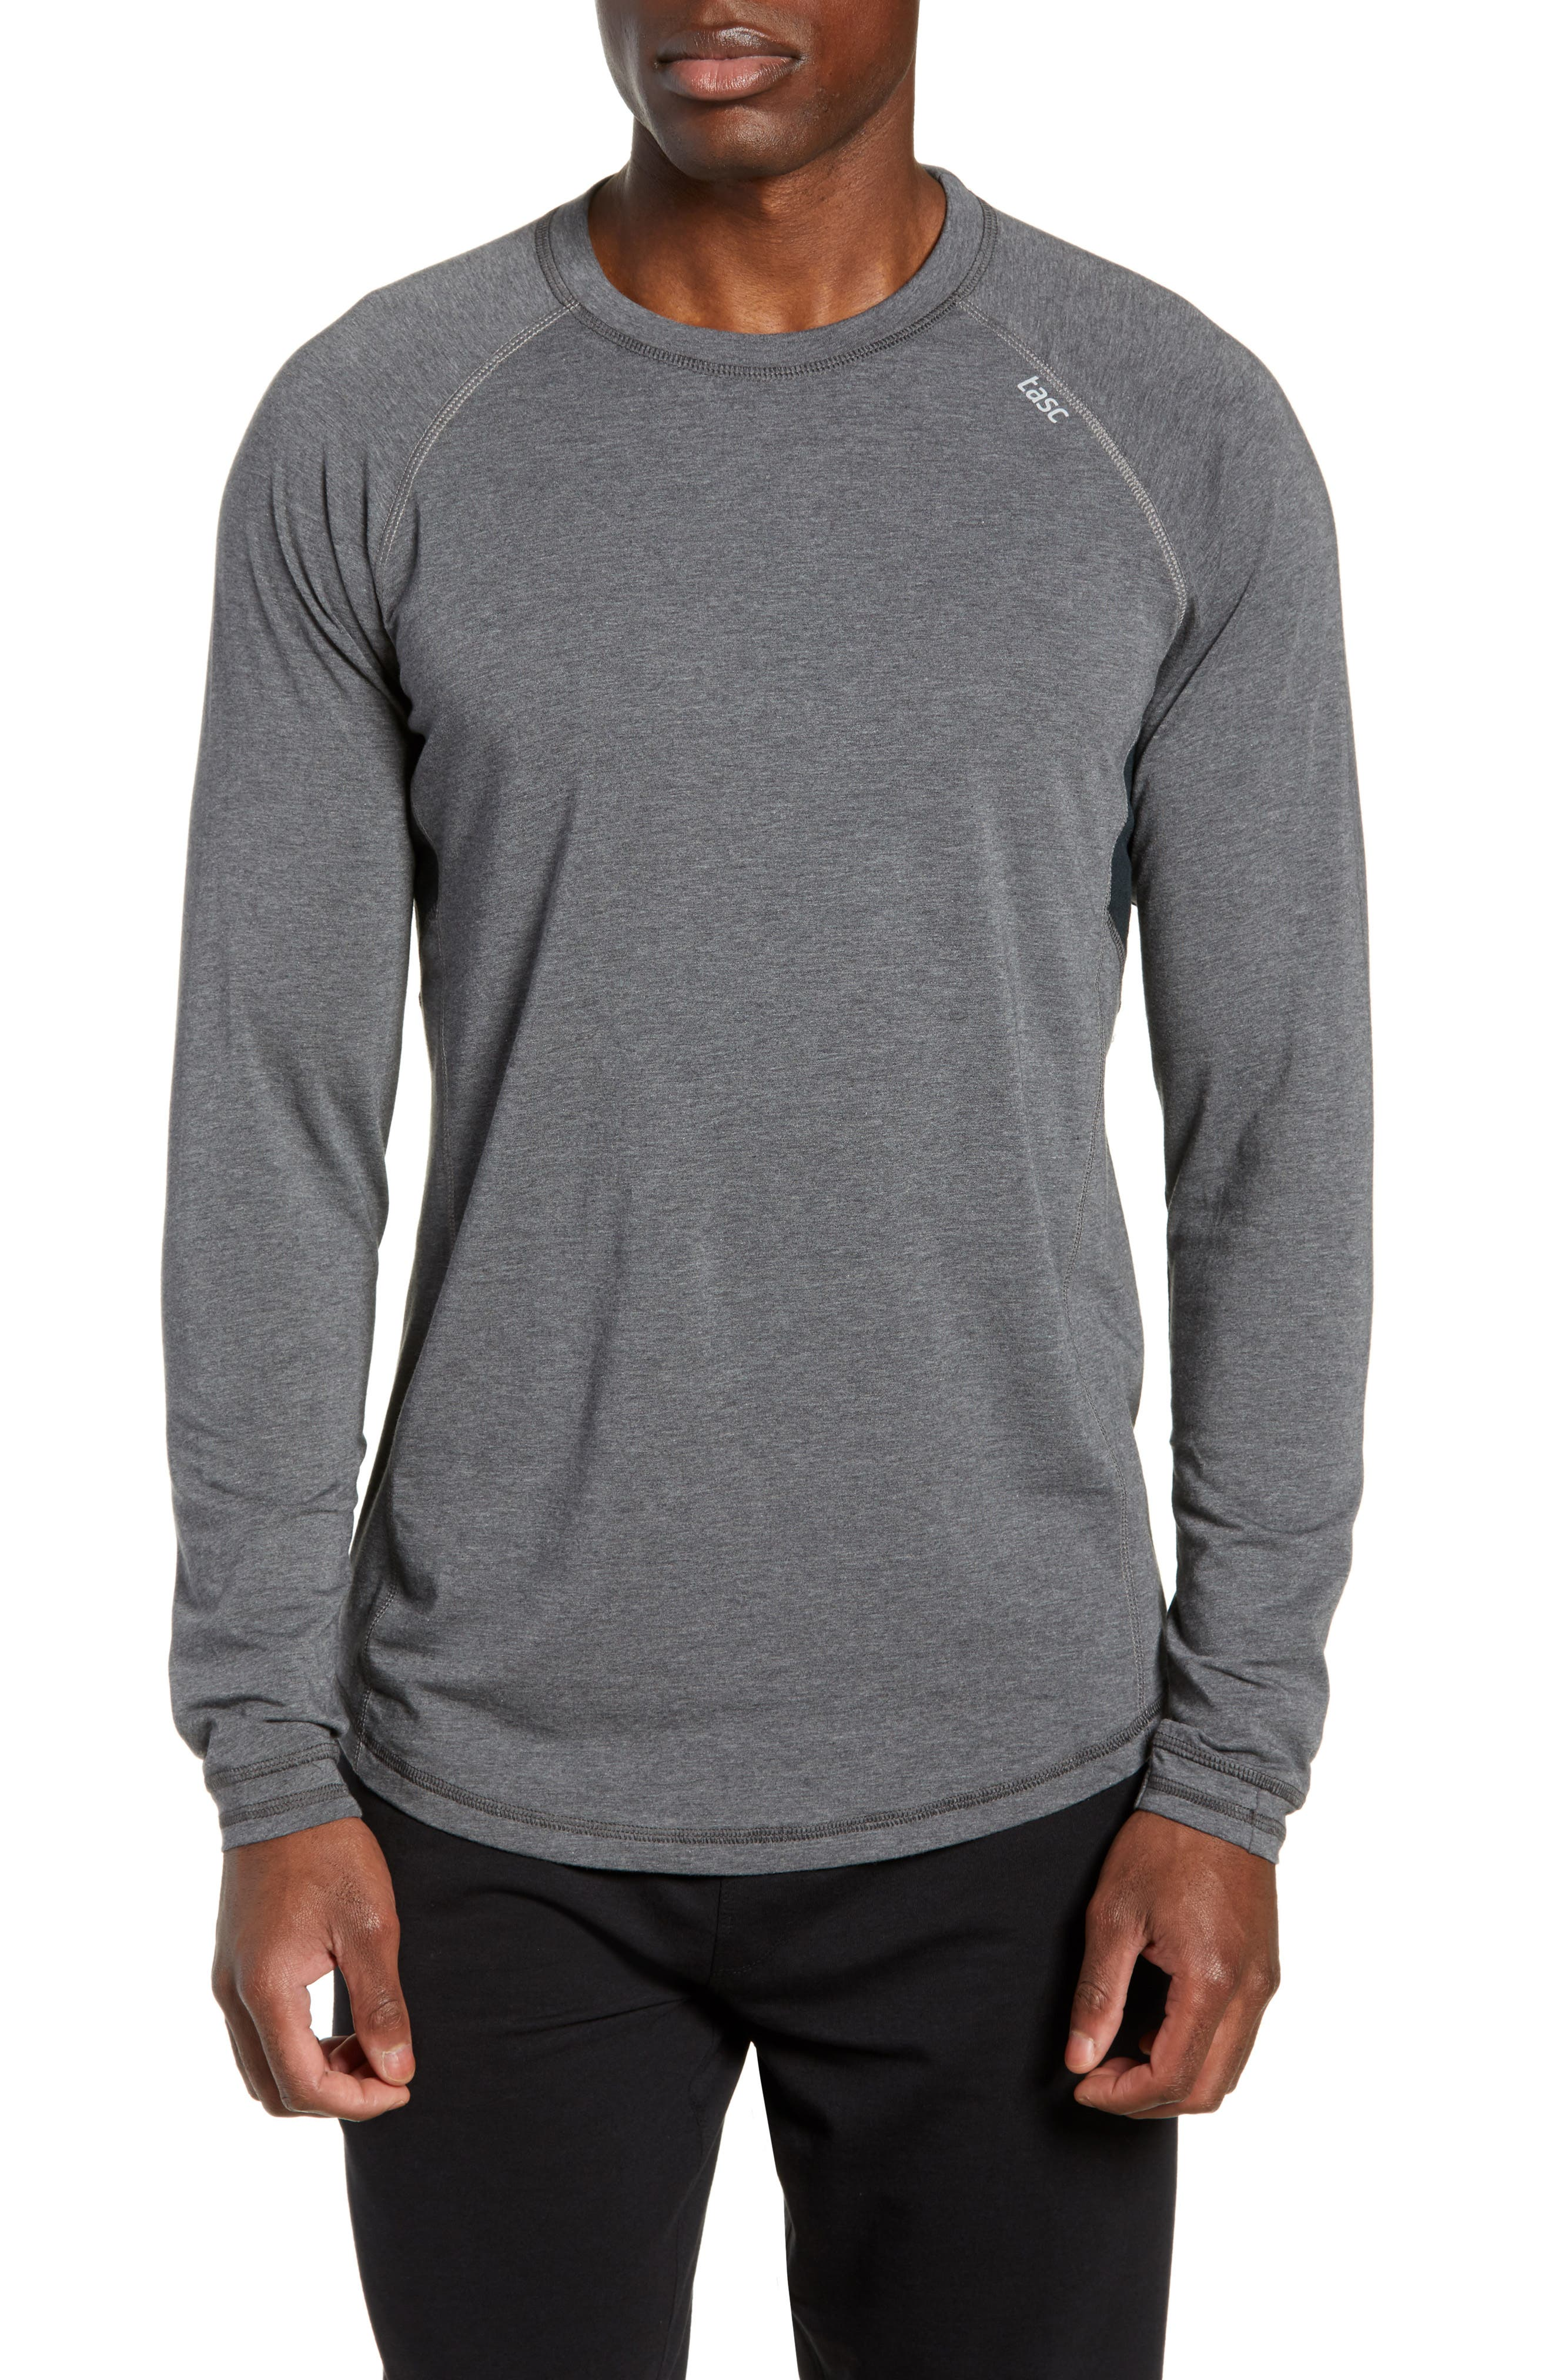 TASC PERFORMANCE Charge II Long Sleeve Shirt, Main, color, BLACK HEATHER